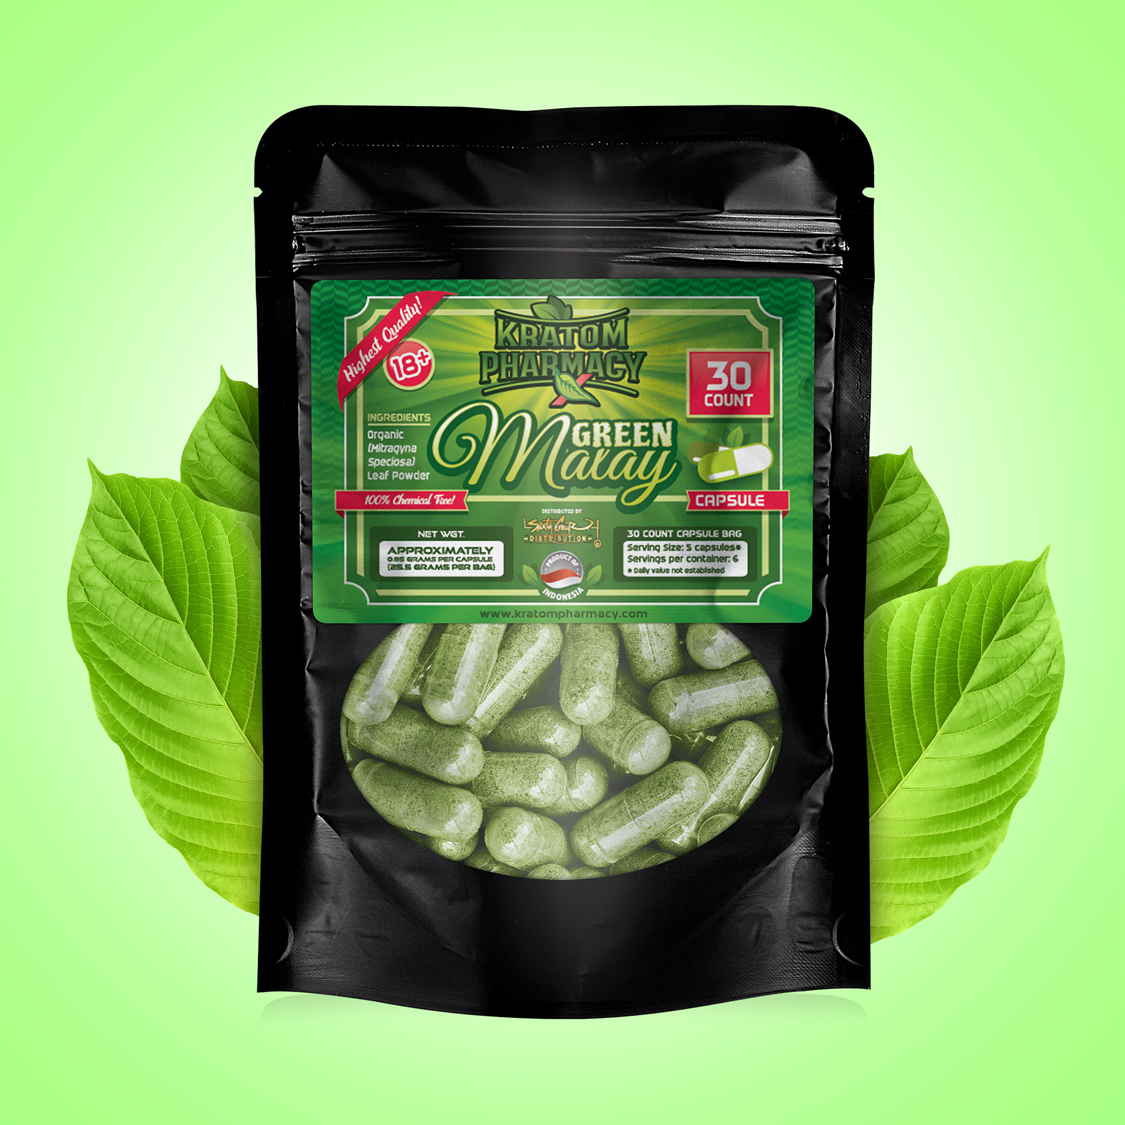 Green Malay - 30 count